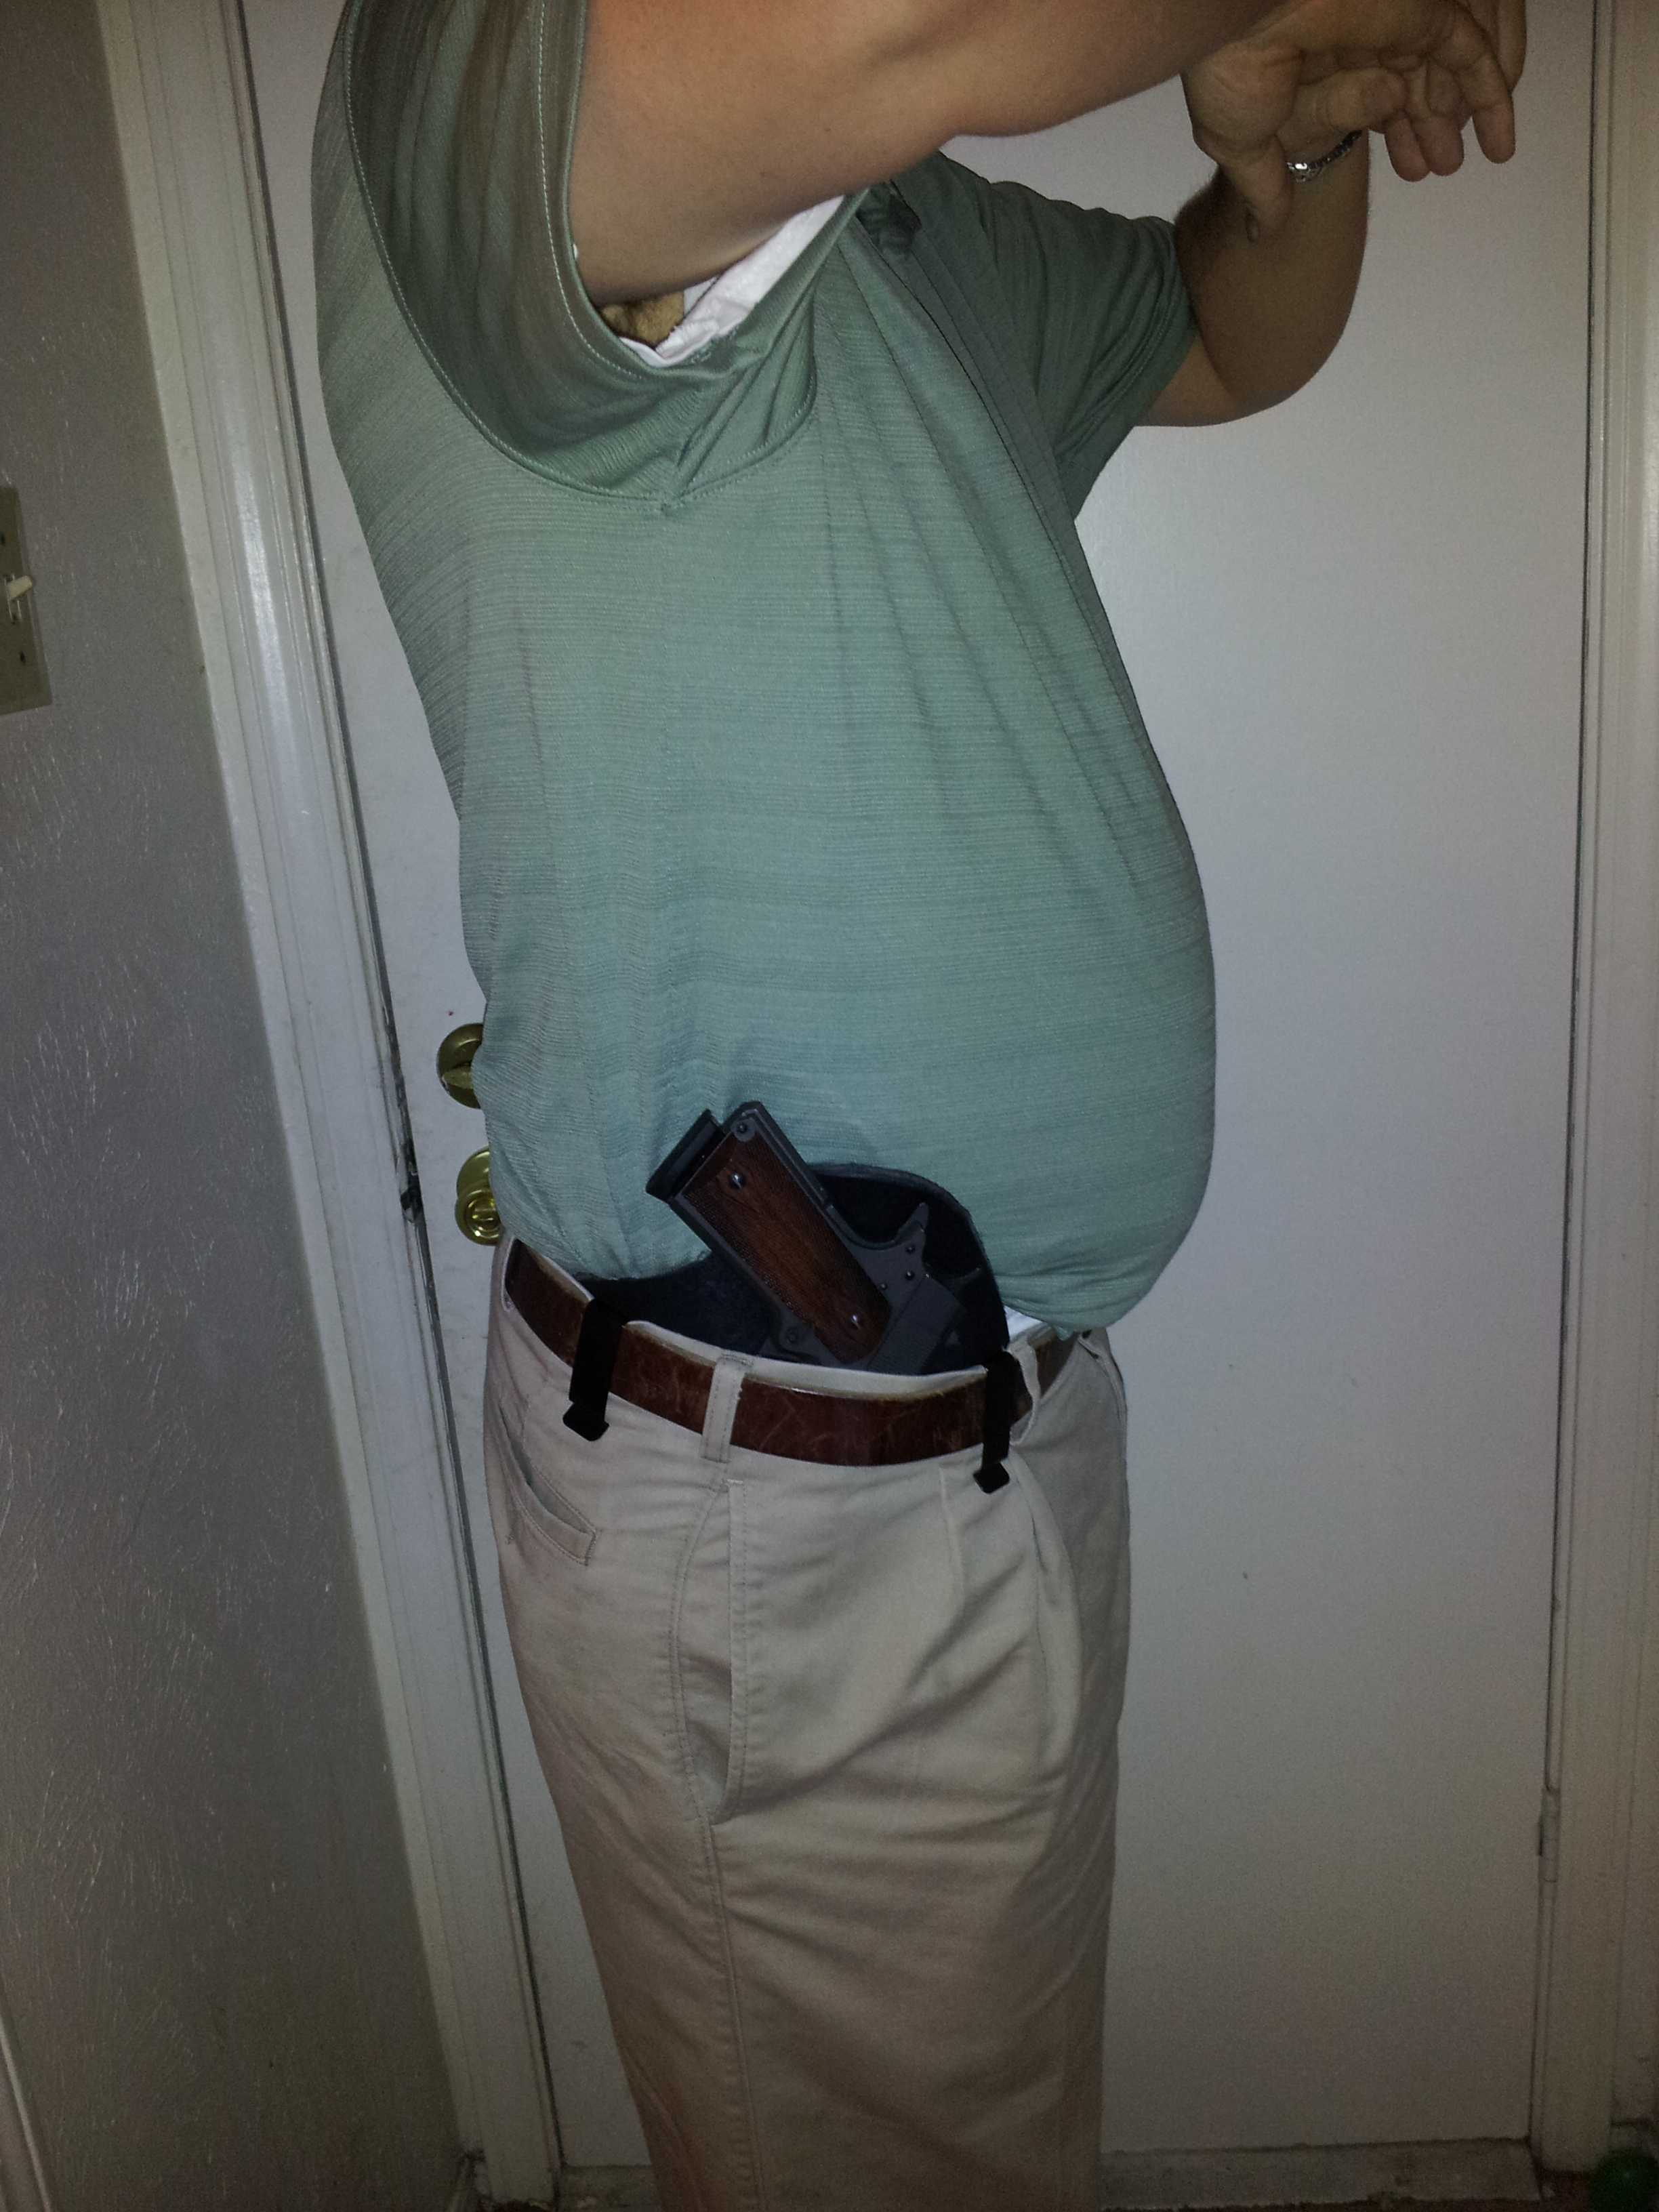 Let's See Your Pic's - How You Carry Concealed.-side-uncovered.jpg